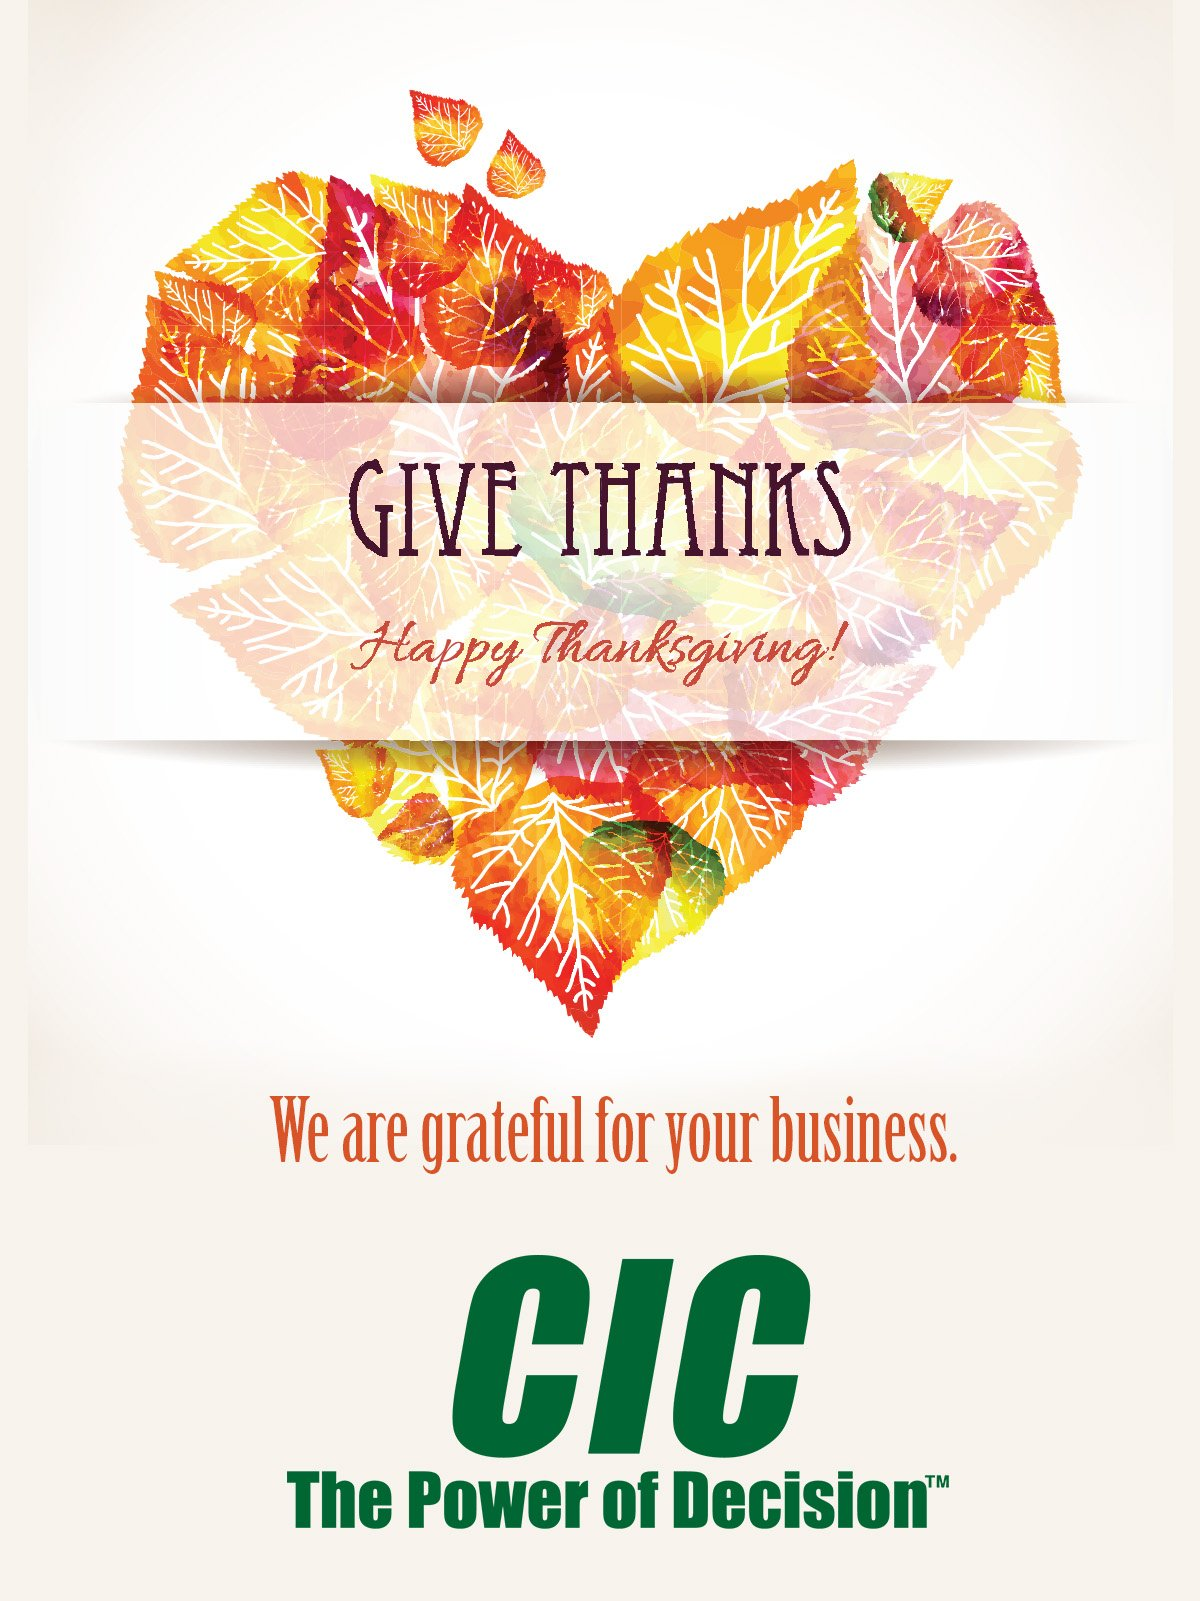 Happy Thanksgiving from CIC